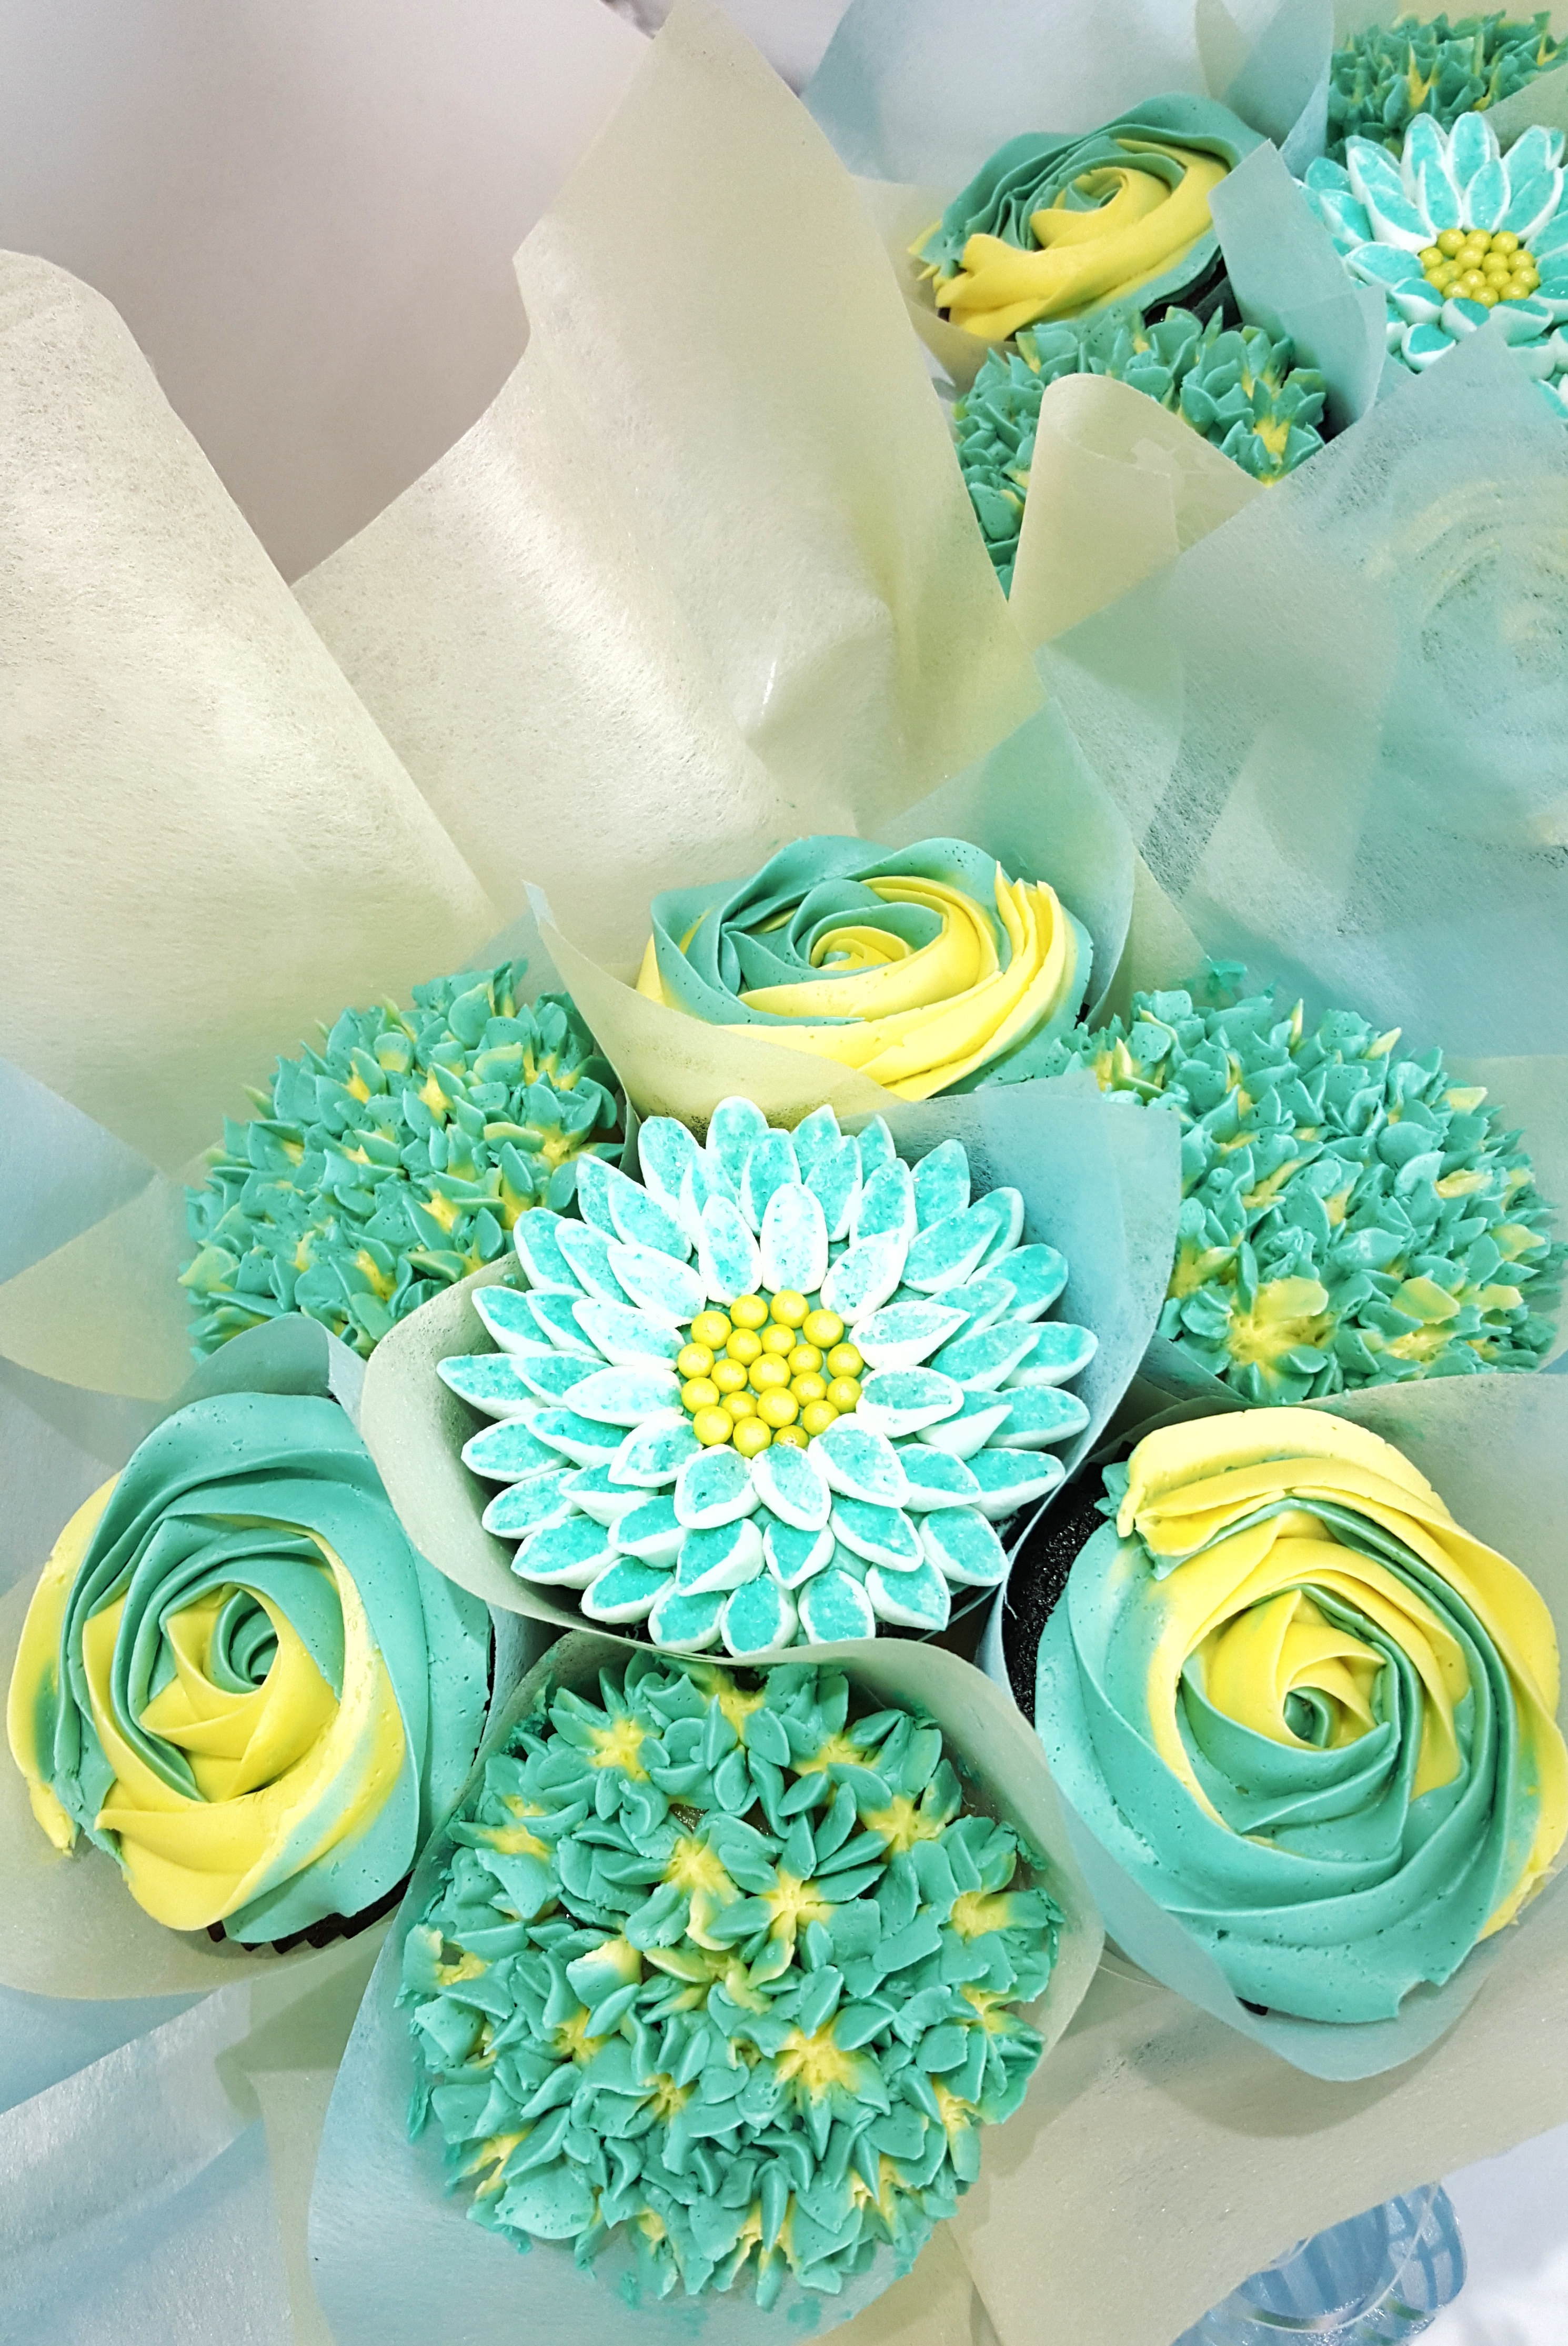 Mixed Blooms - Teal & Yellow